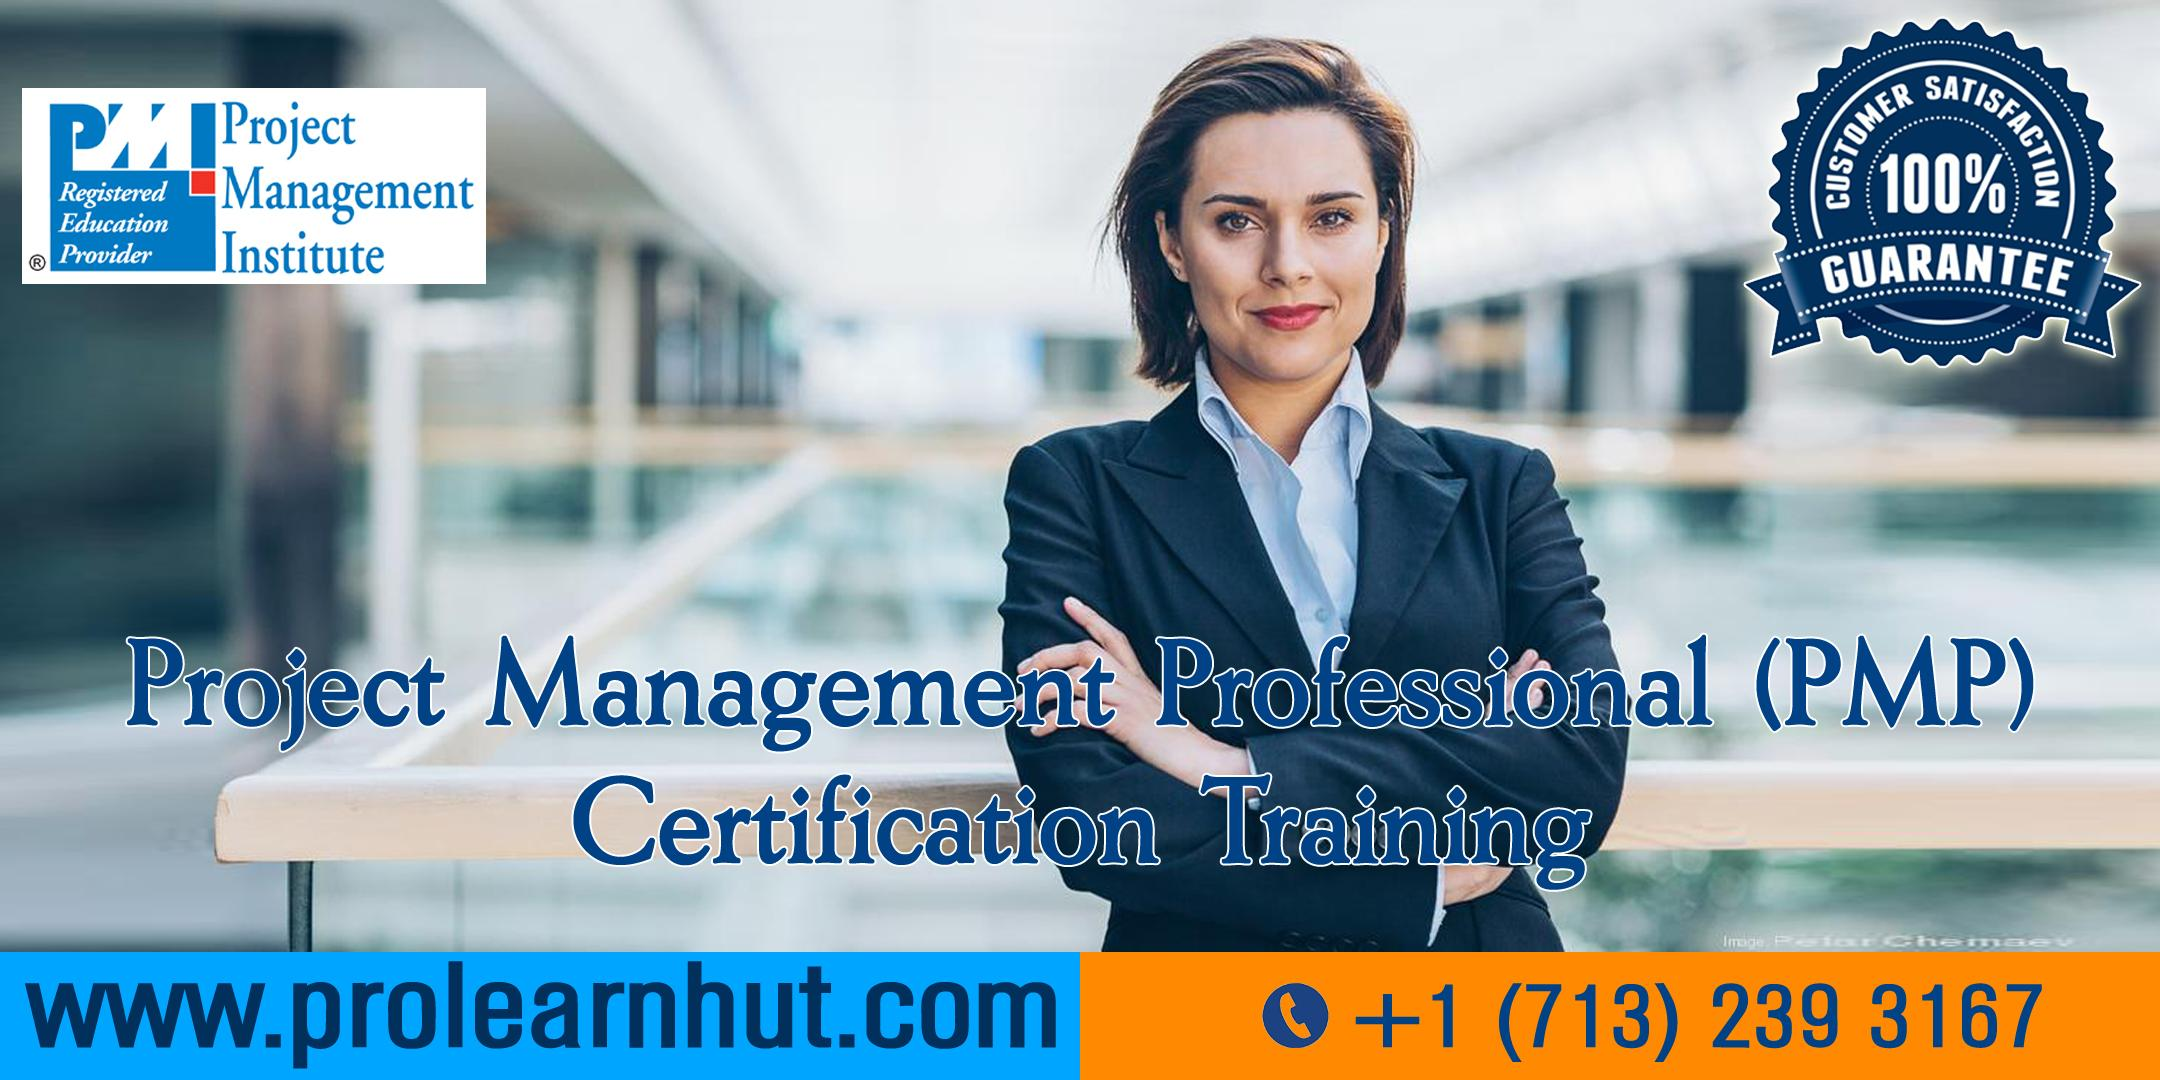 PMP Certification | Project Management Certification| PMP Training in Burbank, CA | ProLearnHut